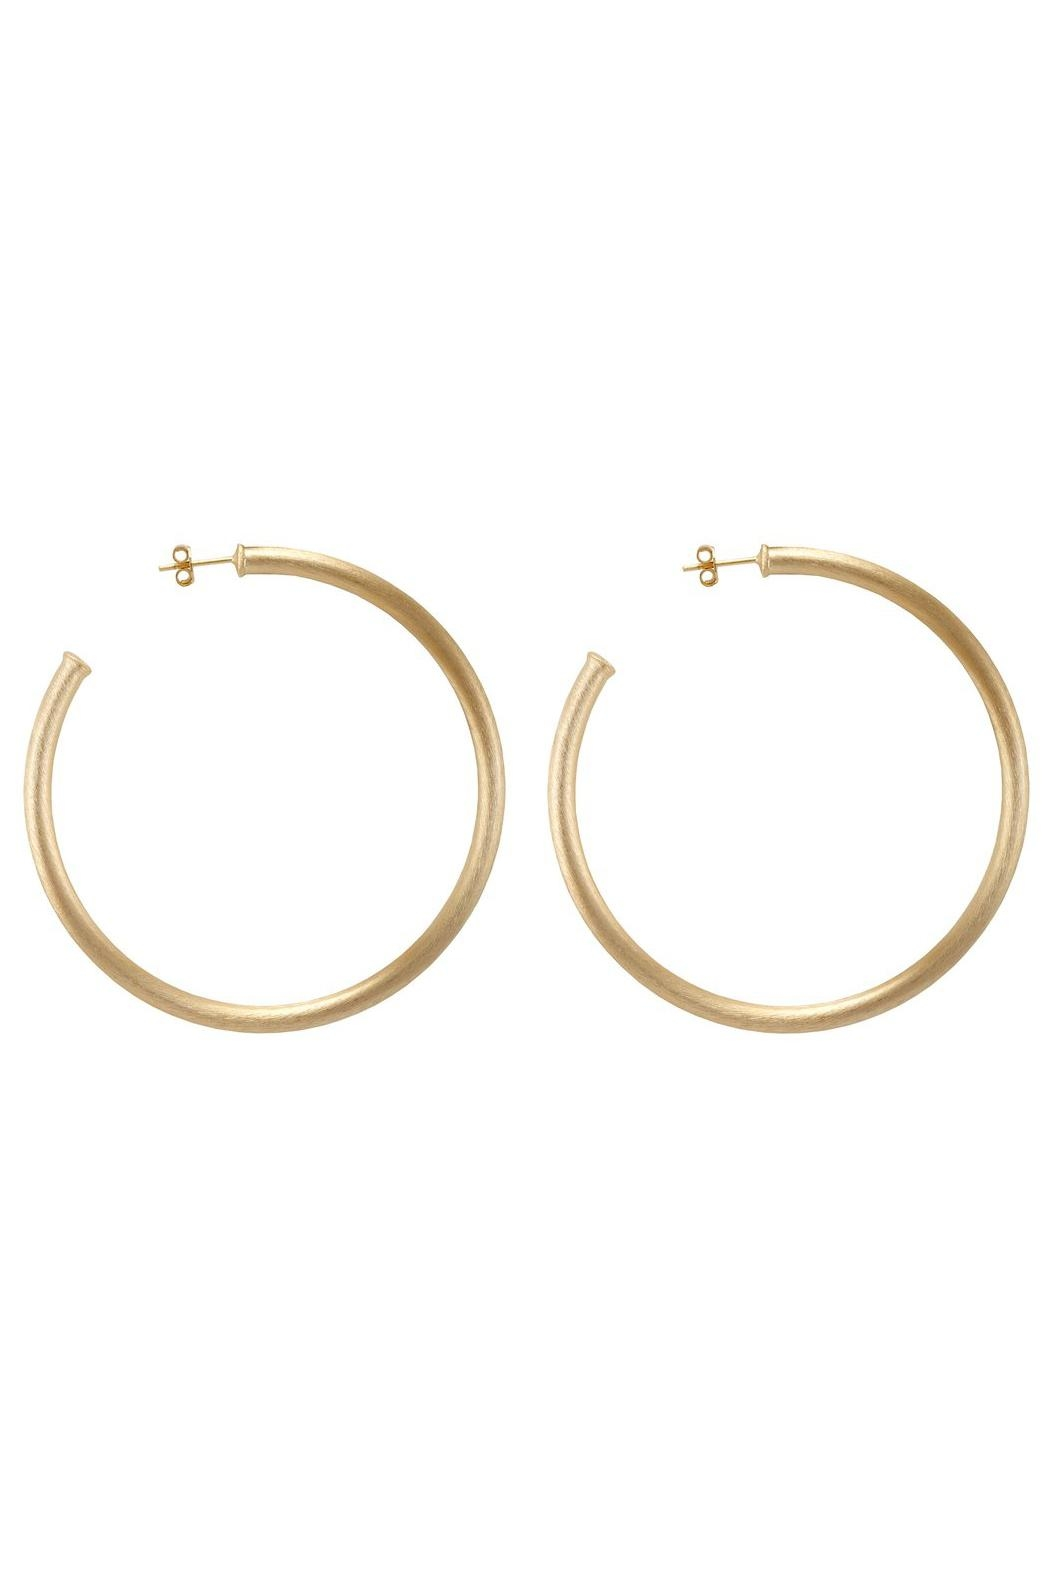 Sheila Fajl Brushed Gold Hoops - Main Image